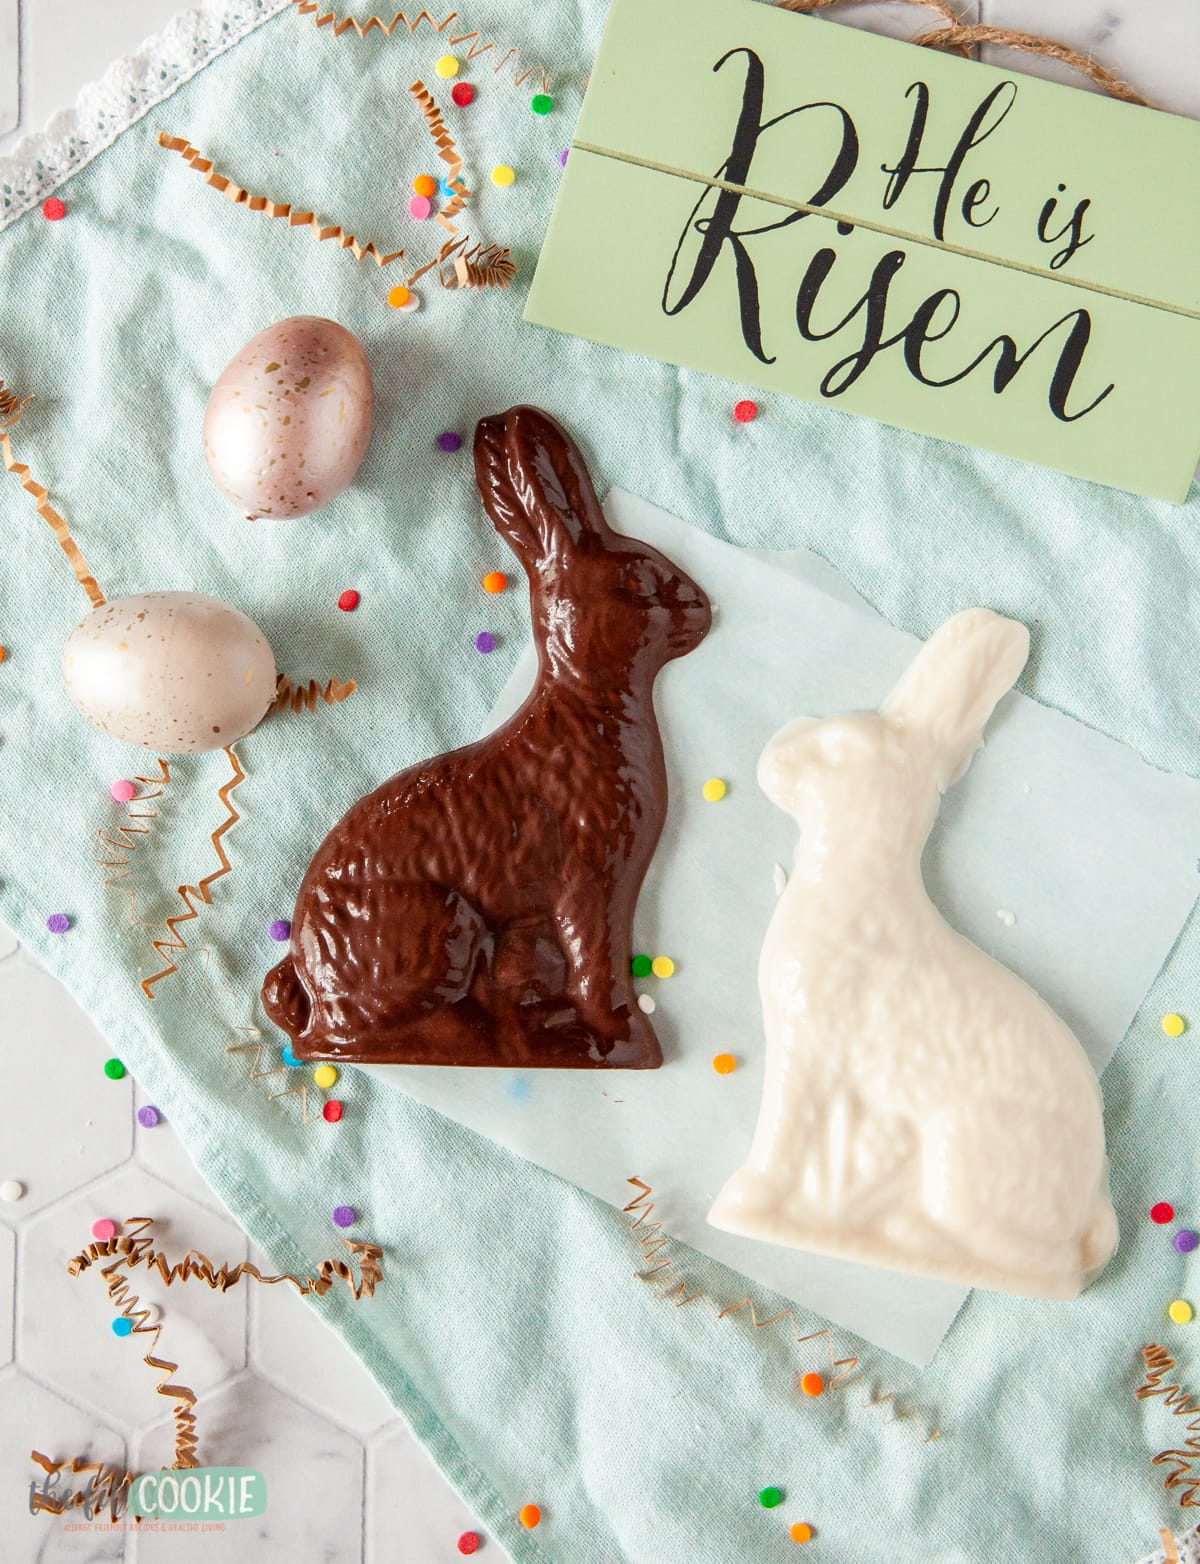 chocolate easter bunny and white chocolate easter bunny on a blue napkin